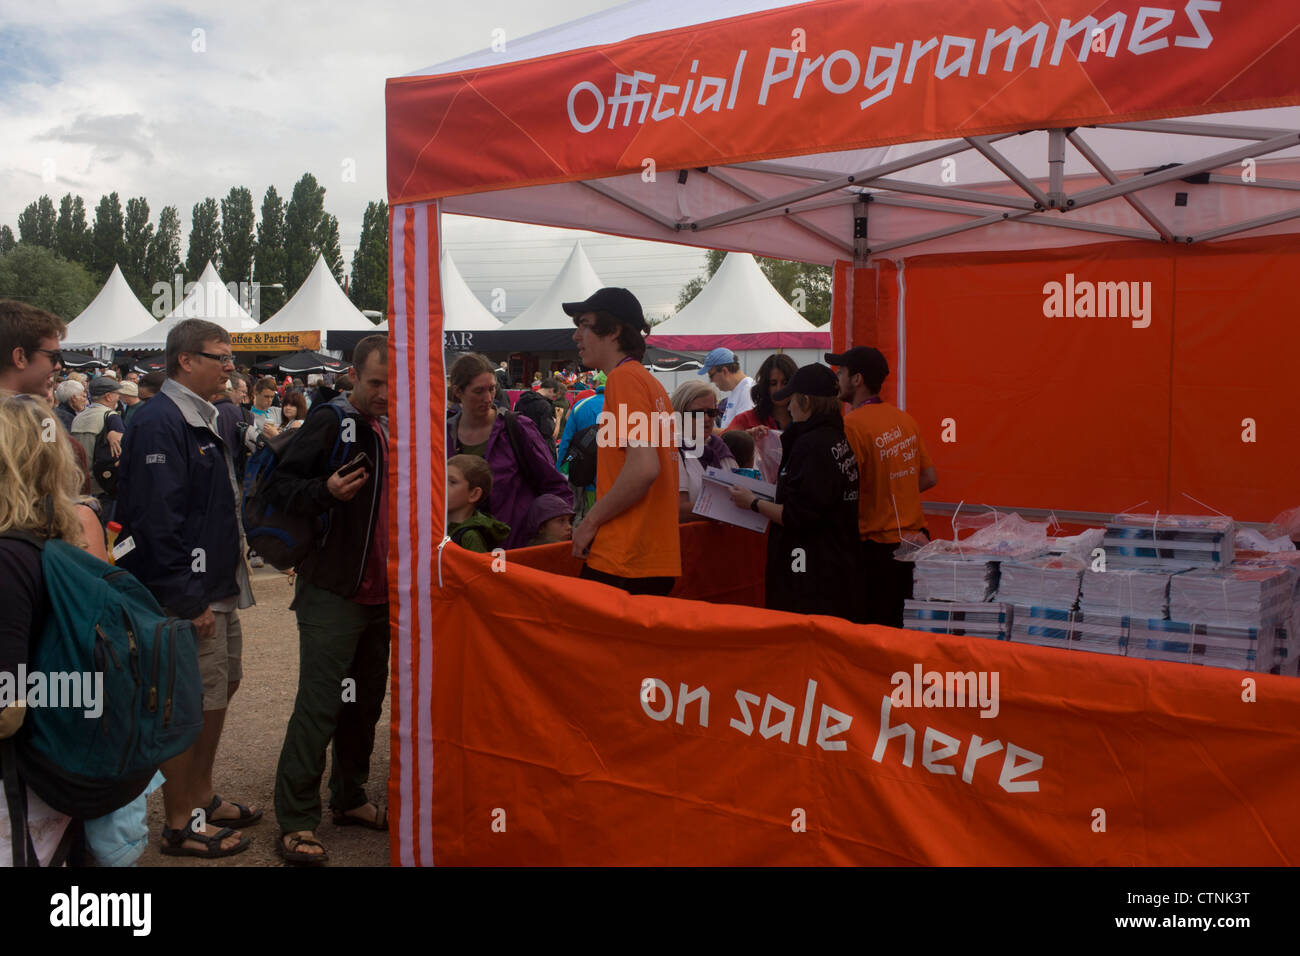 Selling official Olympic programmes before the start of the canoe slalom heats at the Lee Valley White Water Centre, - Stock Image